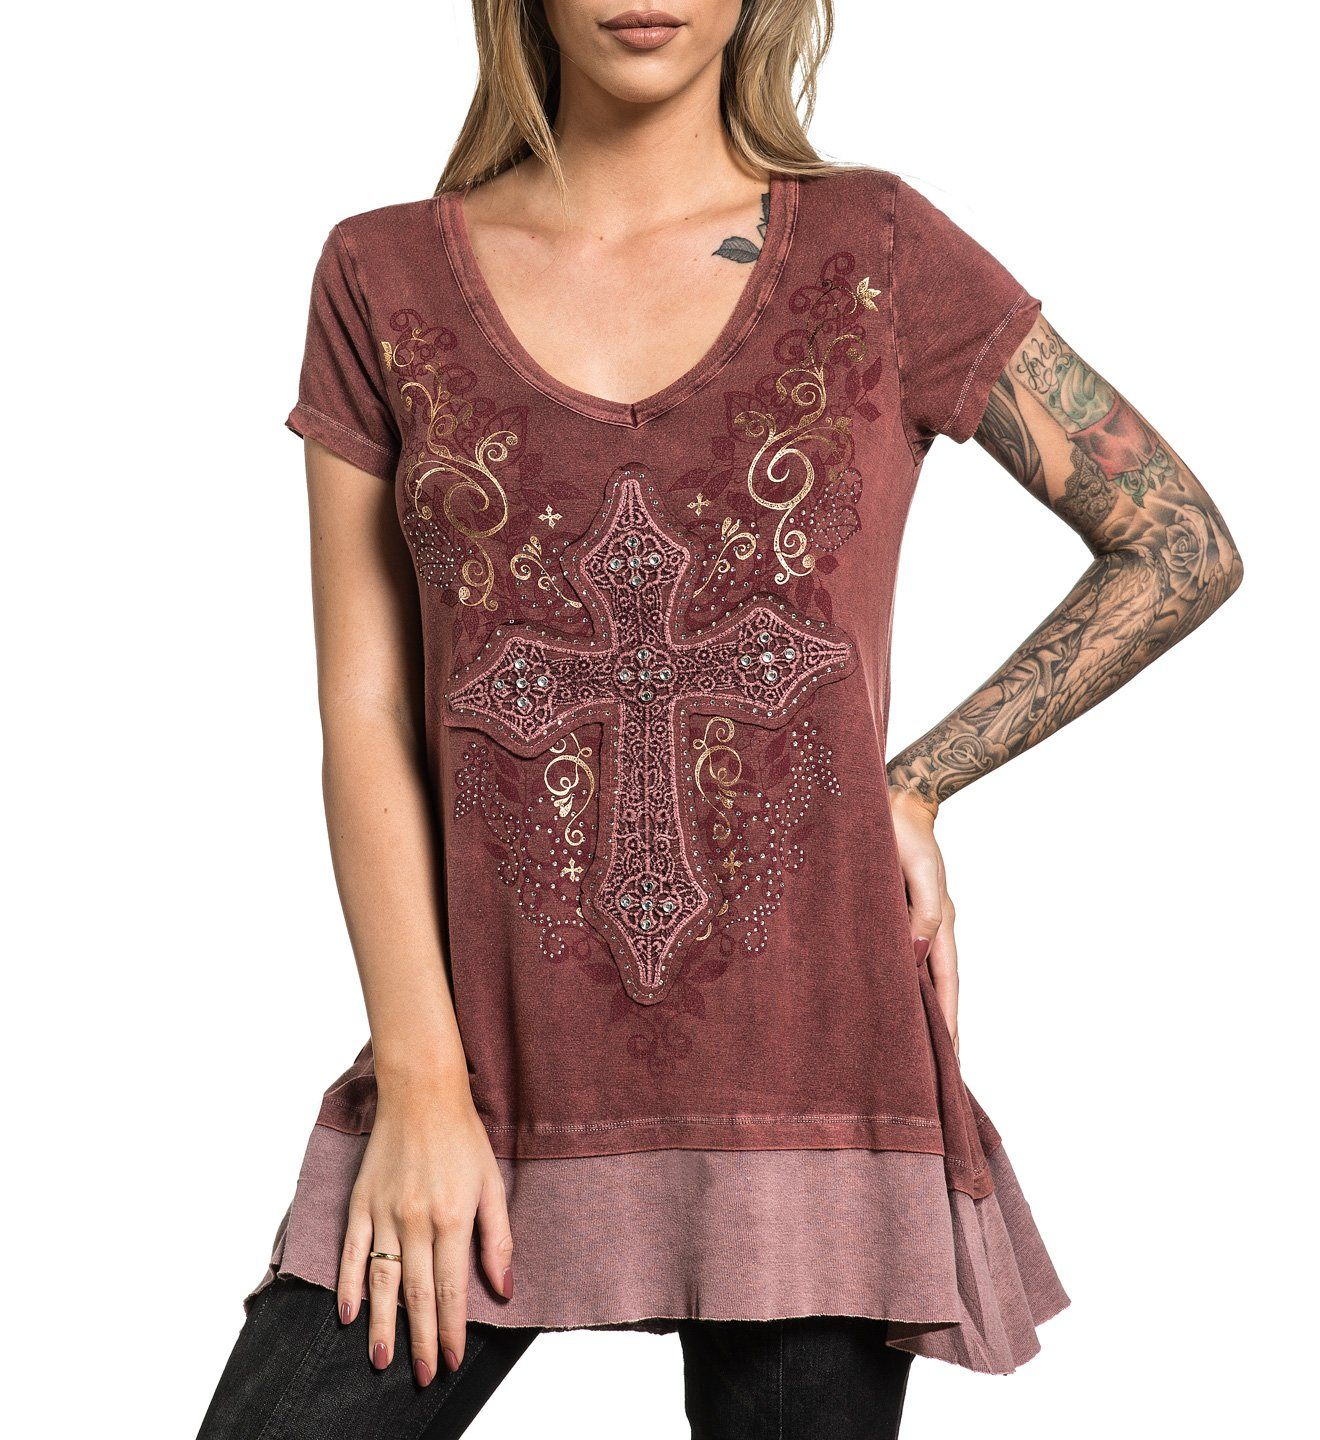 Ariana - Womens Short Sleeve Tees - Affliction Clothing